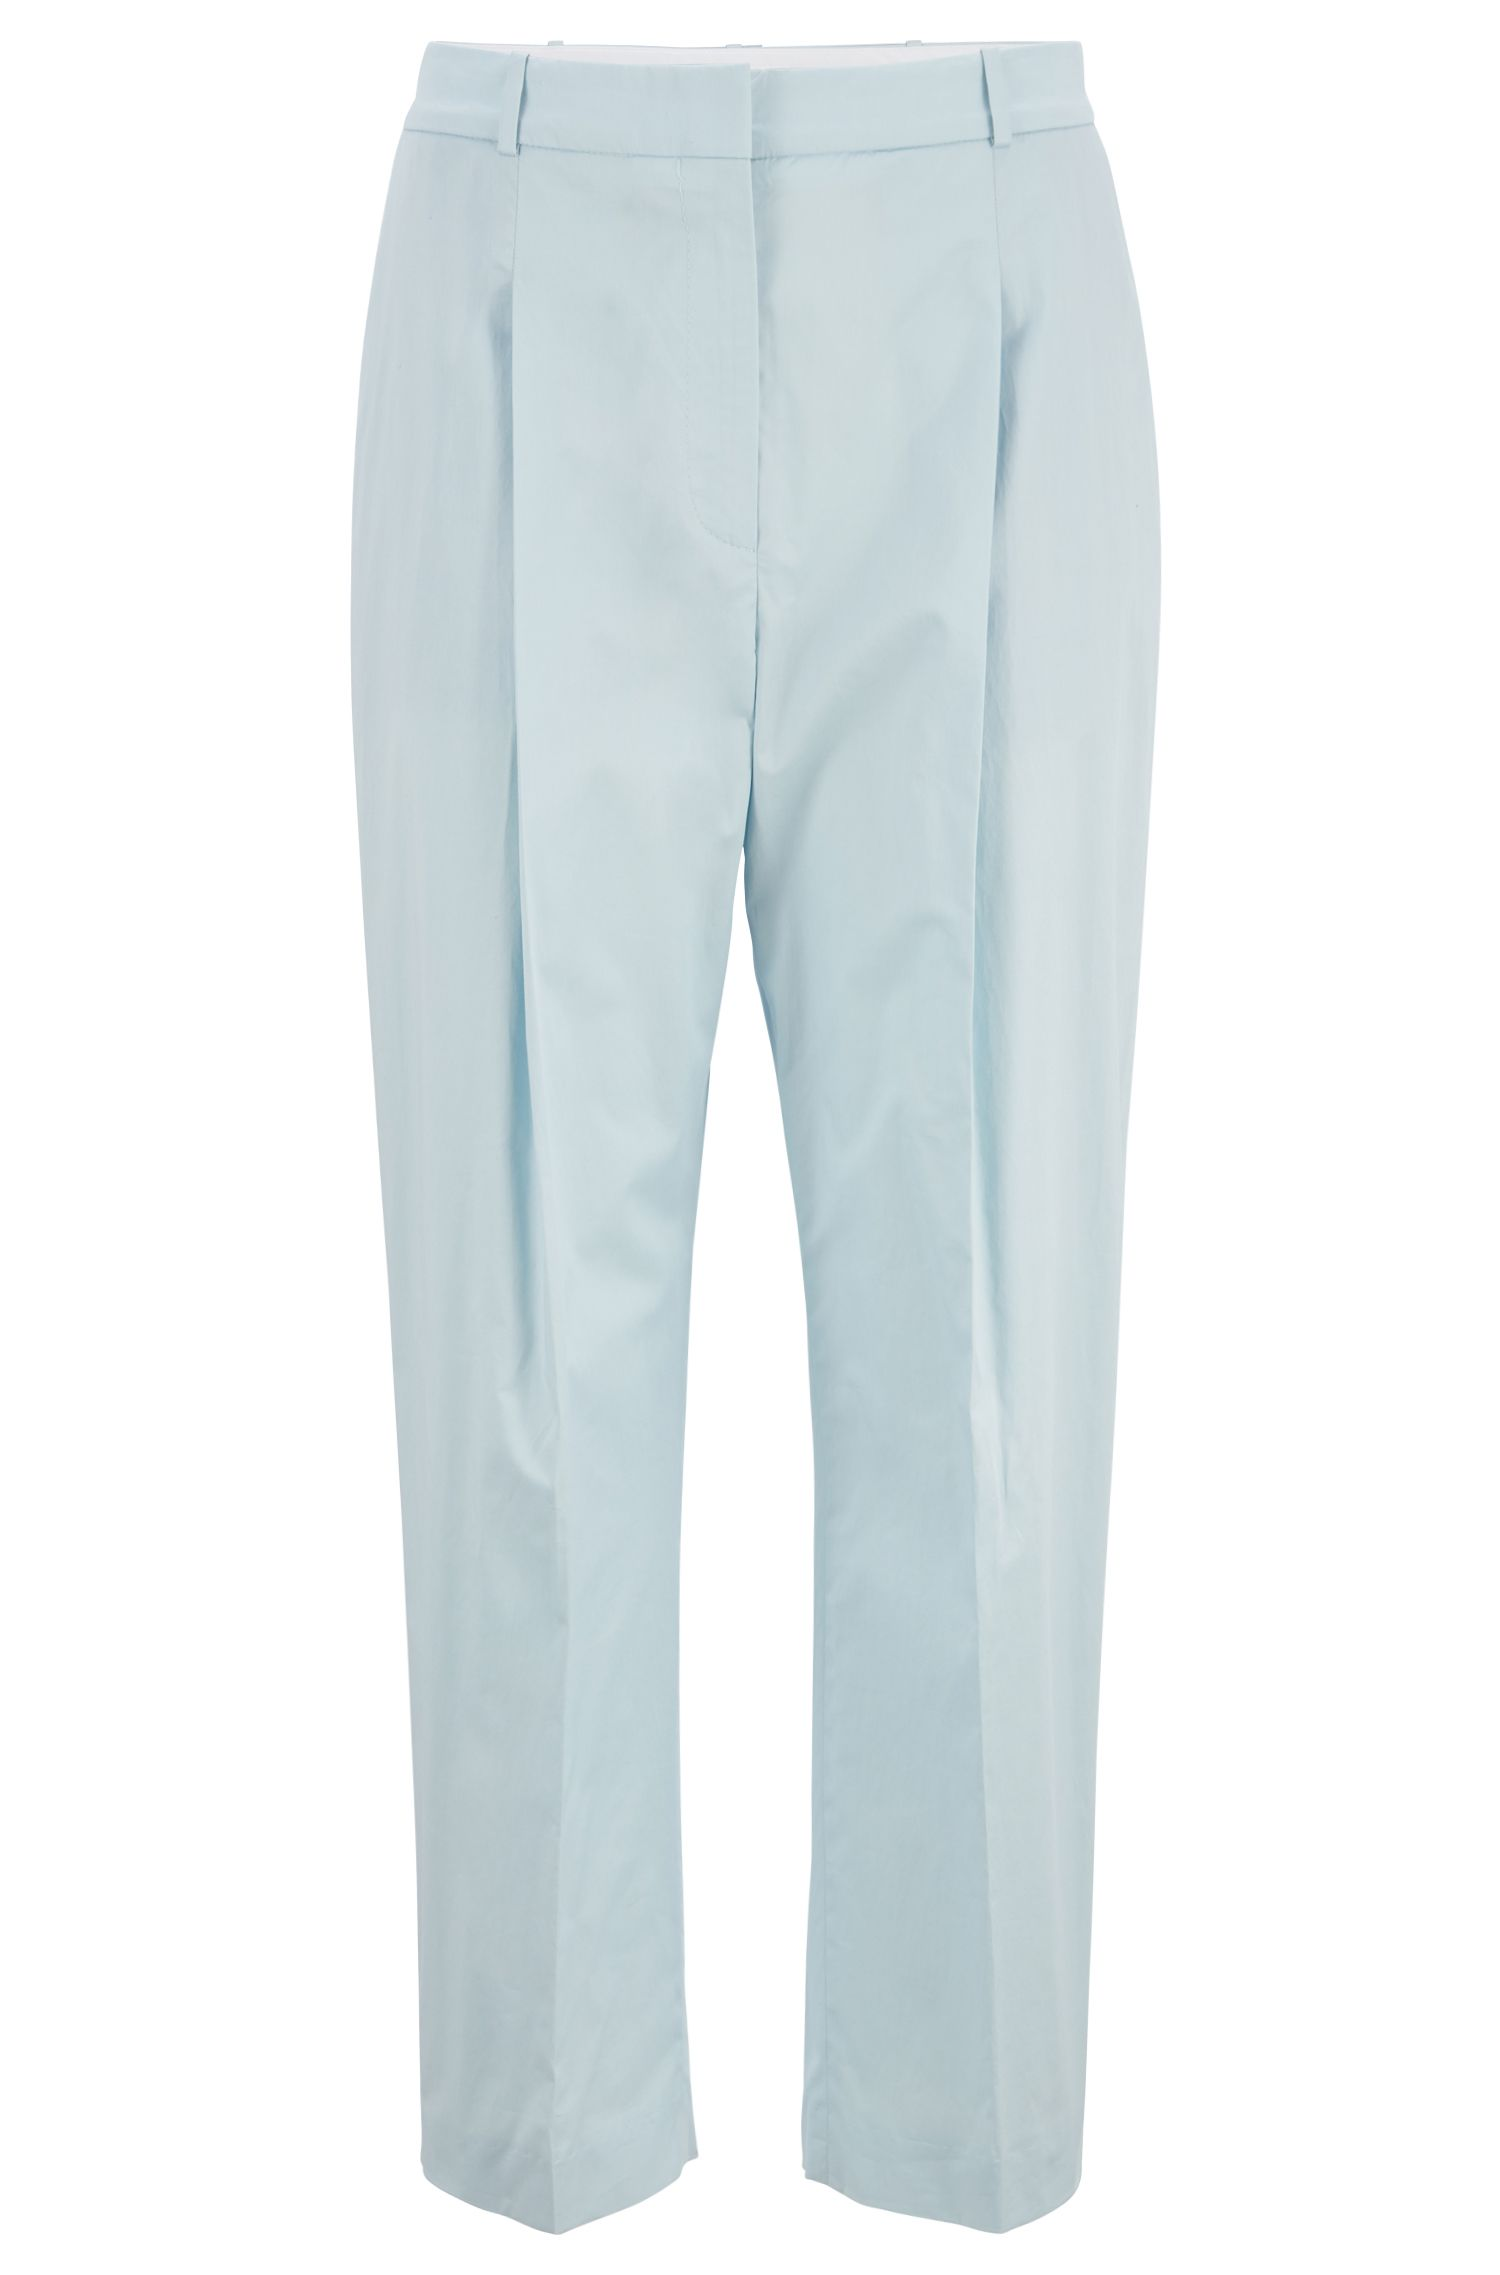 Pantalon court Relaxed Fit en coton stretch au toucher papier, Bleu vif